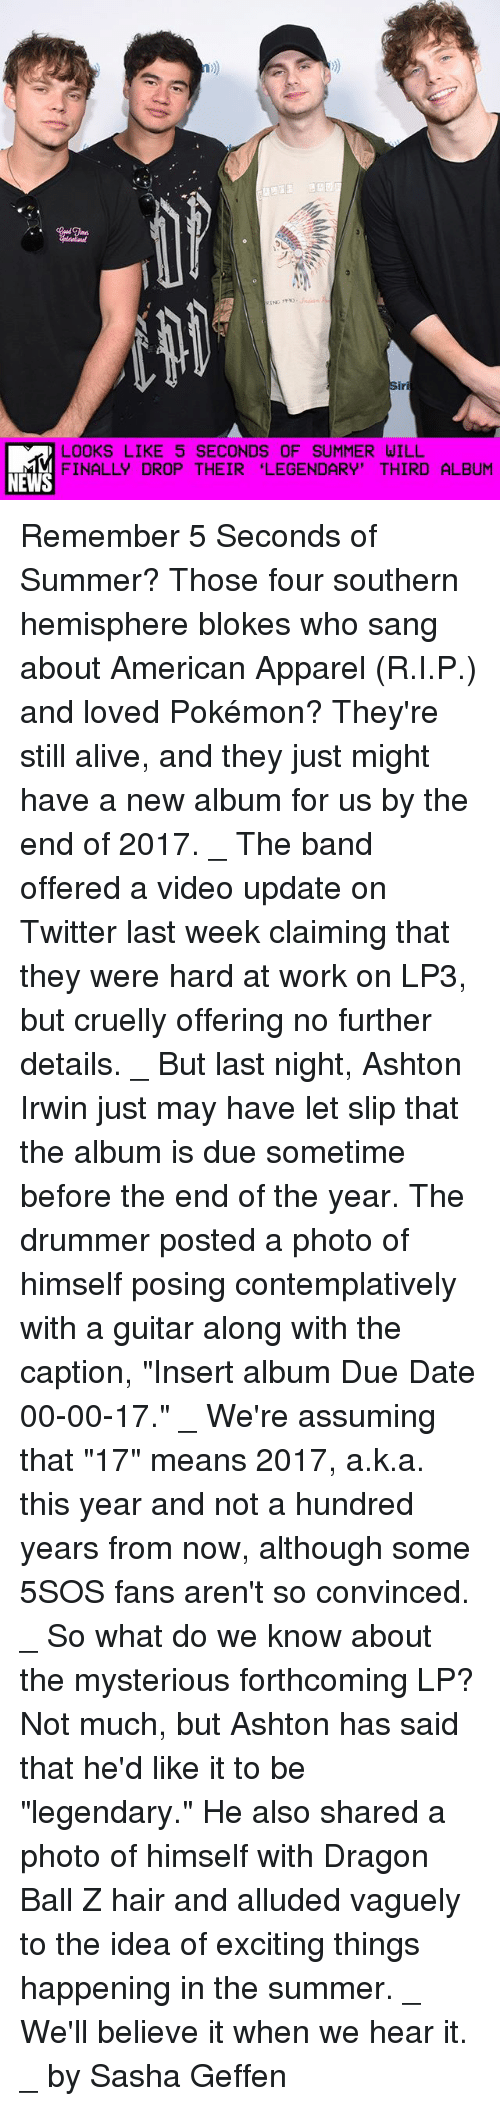 """American Apparel: LOOKS LIKE 5 SECONDS OF SUMMER WILL  FINALLY DROP THEIR """"LEGENDARY' THIRD ALBUM  NEWS Remember 5 Seconds of Summer? Those four southern hemisphere blokes who sang about American Apparel (R.I.P.) and loved Pokémon? They're still alive, and they just might have a new album for us by the end of 2017. _ The band offered a video update on Twitter last week claiming that they were hard at work on LP3, but cruelly offering no further details. _ But last night, Ashton Irwin just may have let slip that the album is due sometime before the end of the year. The drummer posted a photo of himself posing contemplatively with a guitar along with the caption, """"Insert album Due Date 00-00-17."""" _ We're assuming that """"17"""" means 2017, a.k.a. this year and not a hundred years from now, although some 5SOS fans aren't so convinced. _ So what do we know about the mysterious forthcoming LP? Not much, but Ashton has said that he'd like it to be """"legendary."""" He also shared a photo of himself with Dragon Ball Z hair and alluded vaguely to the idea of exciting things happening in the summer. _ We'll believe it when we hear it. _ by Sasha Geffen"""